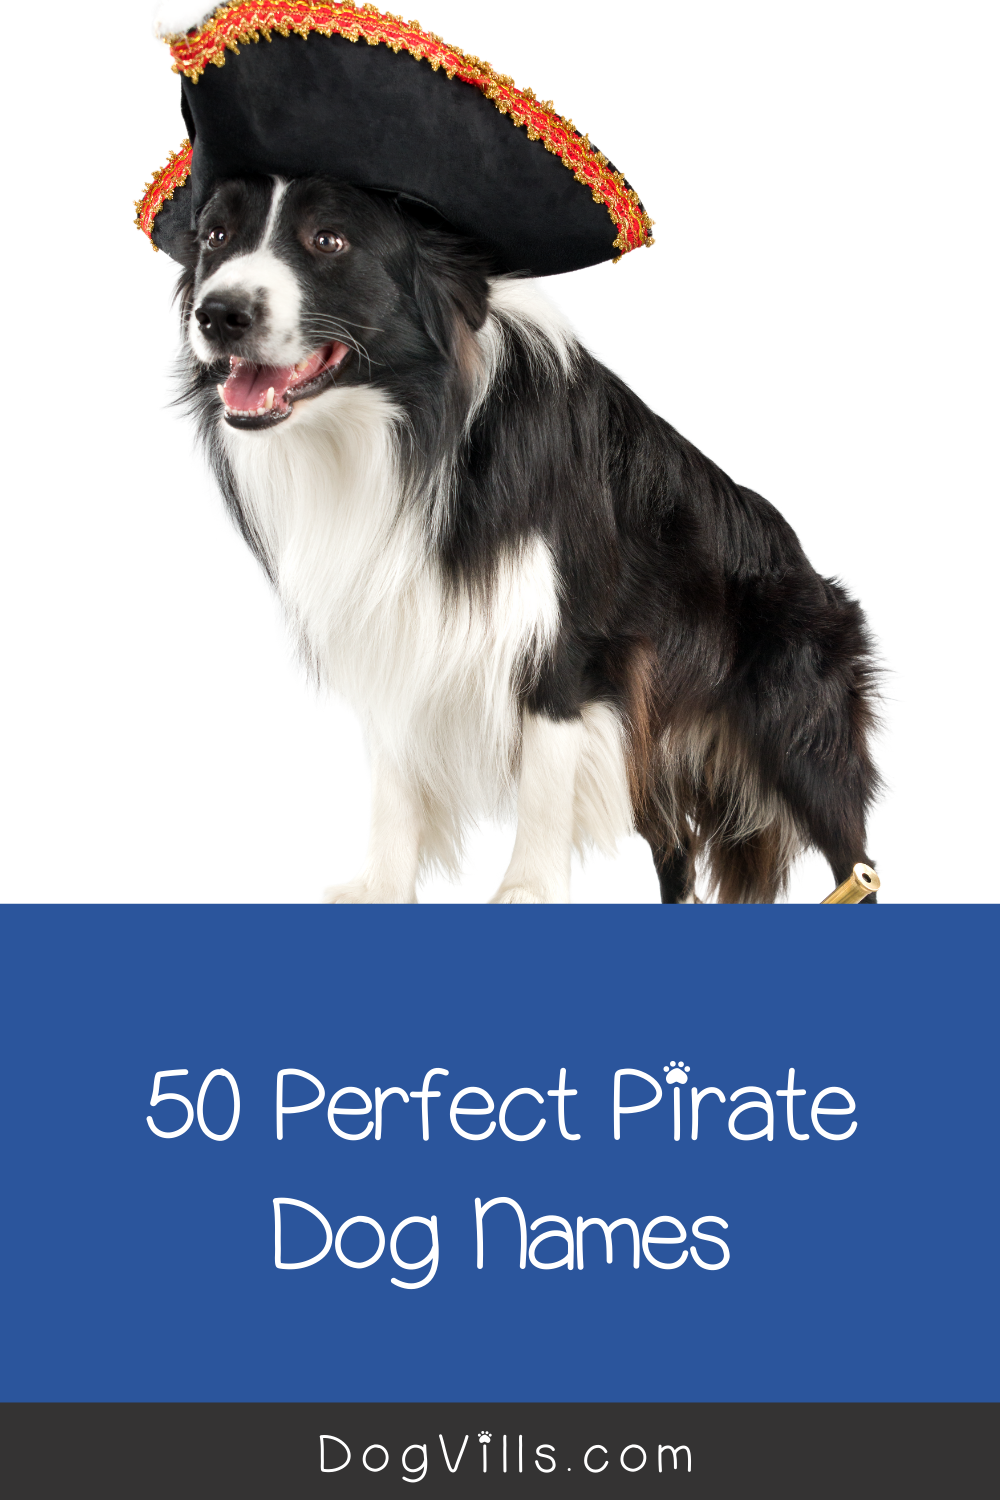 50 Perfect Pirate Dog Names Dogvills In 2020 Dog Names Dog Adoption Quotes Dog Adoption Party